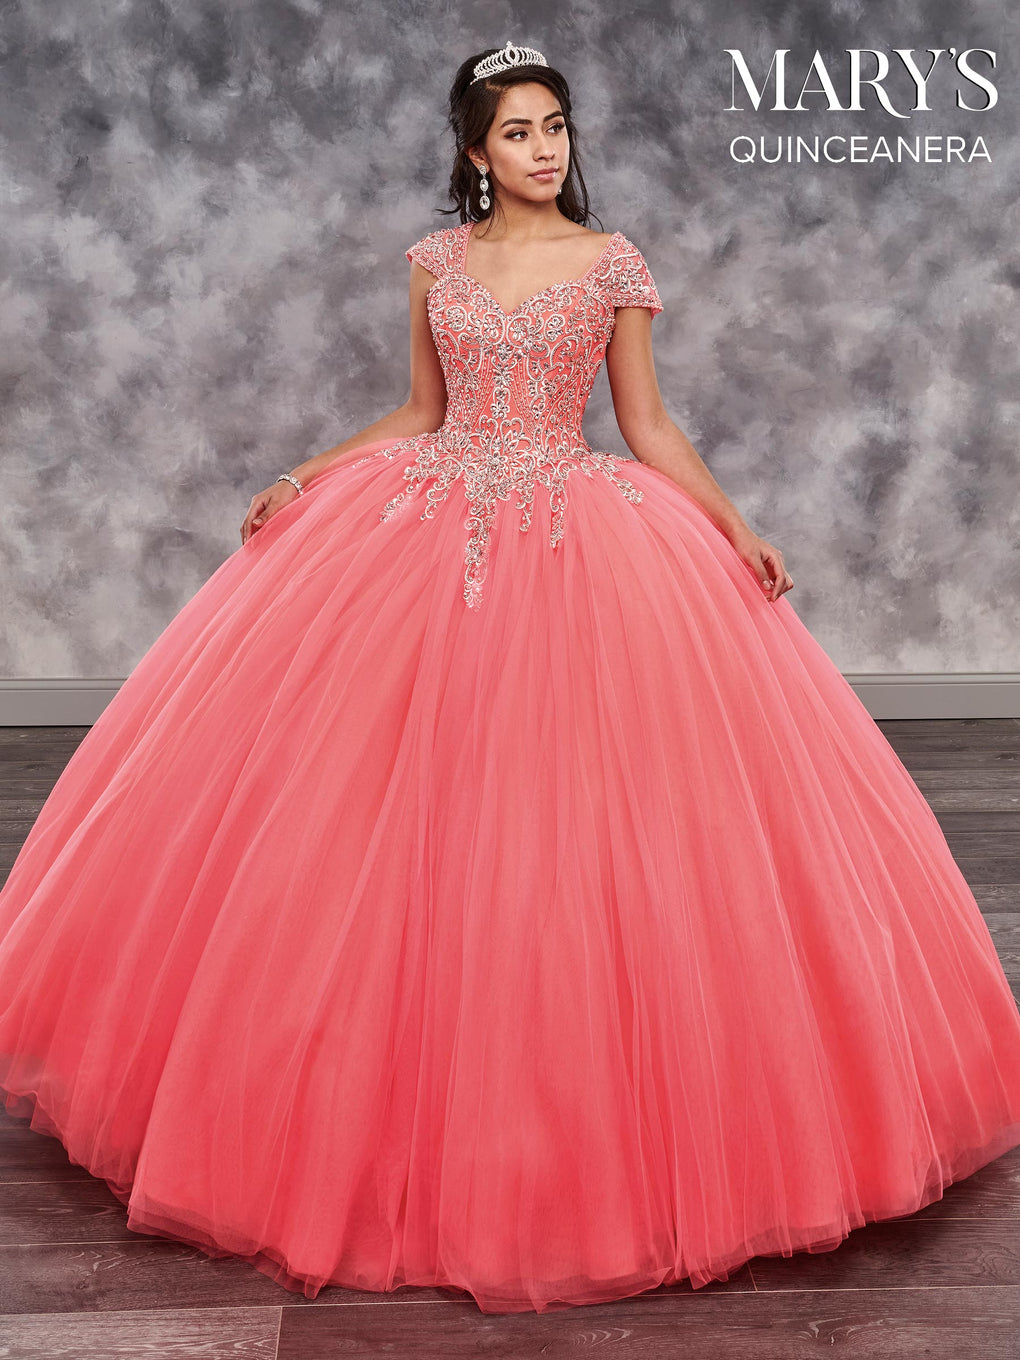 Marys Quinceanera Dresses in Hot Coral, Lilac, or White Color